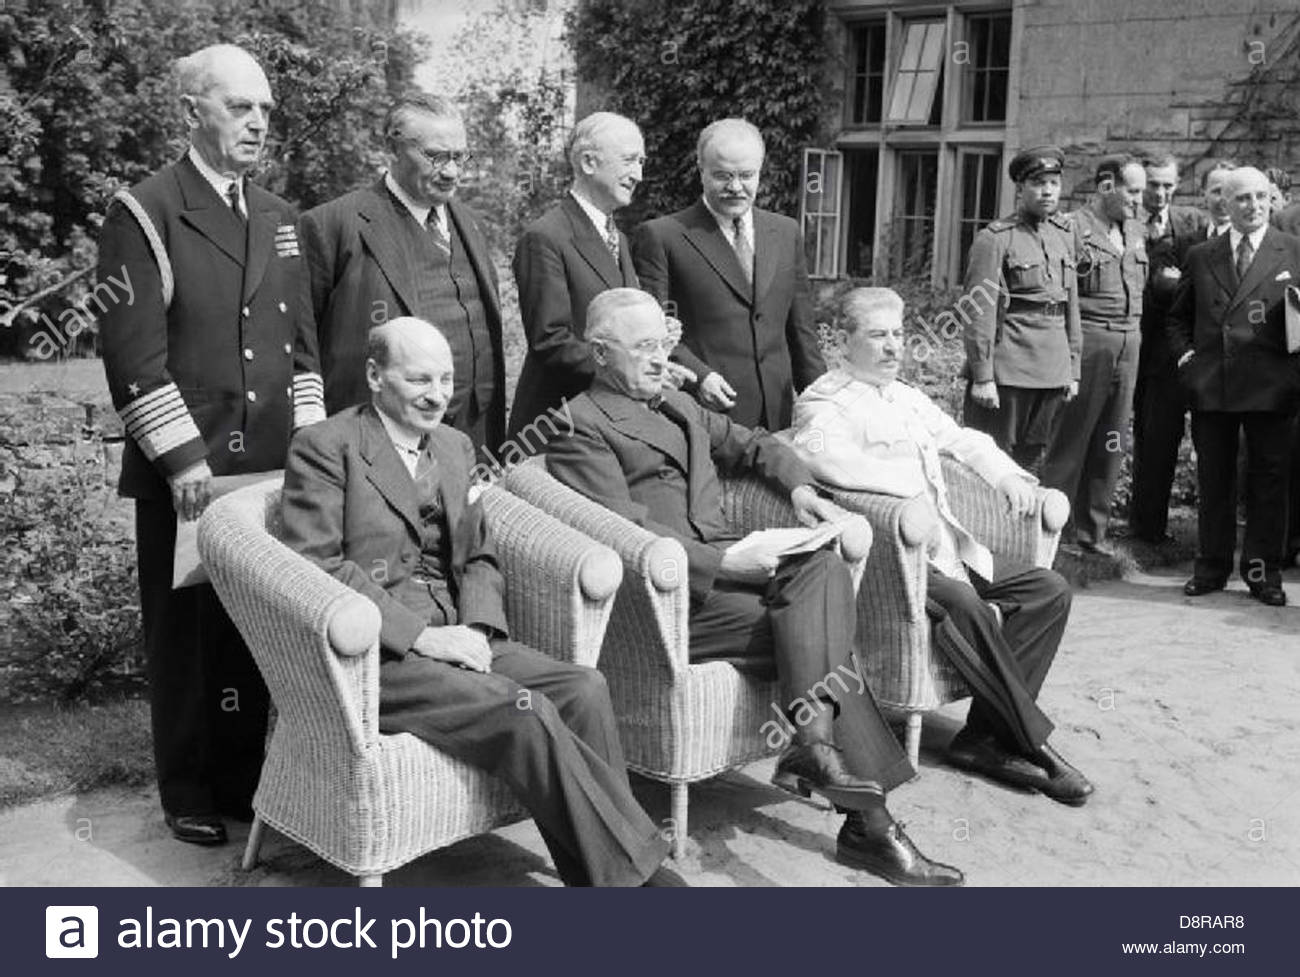 Britain's new Prime Minister, Clement Attlee, with President Truman and Marshal Stalin at the Potsdam Conference - Stock Image